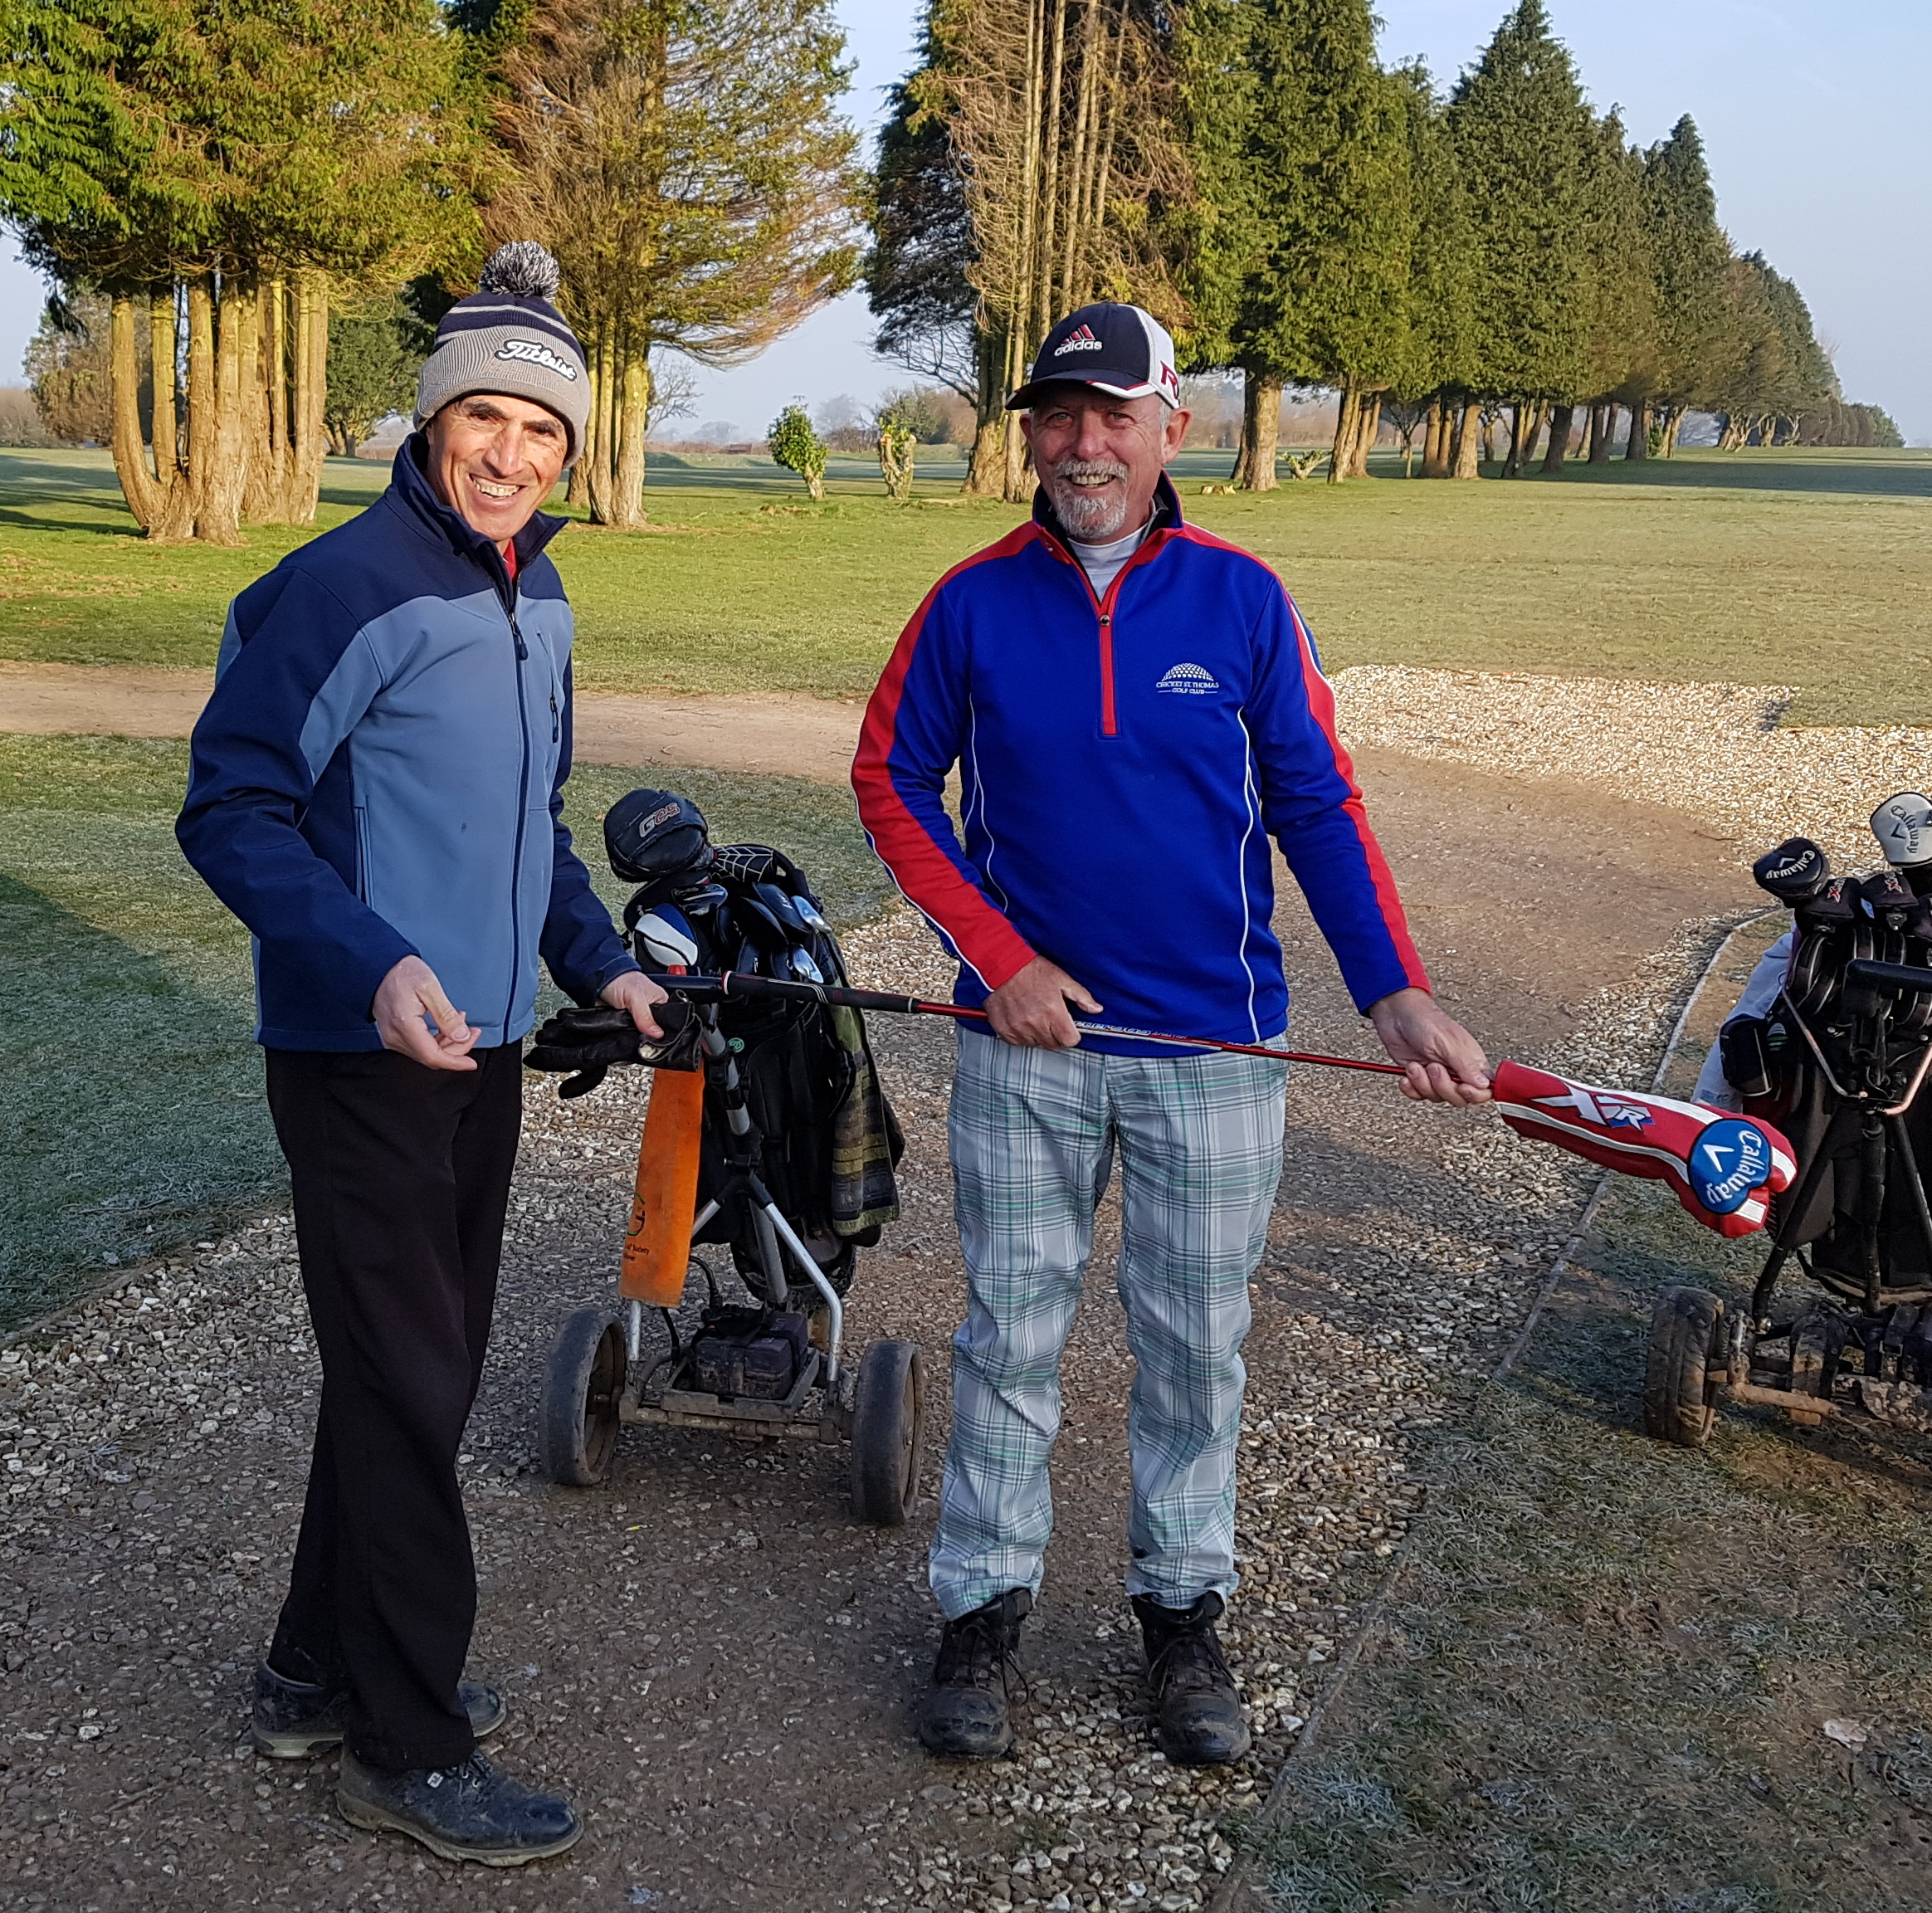 Winter League winners Chris Gingell (left) and James Siabi.